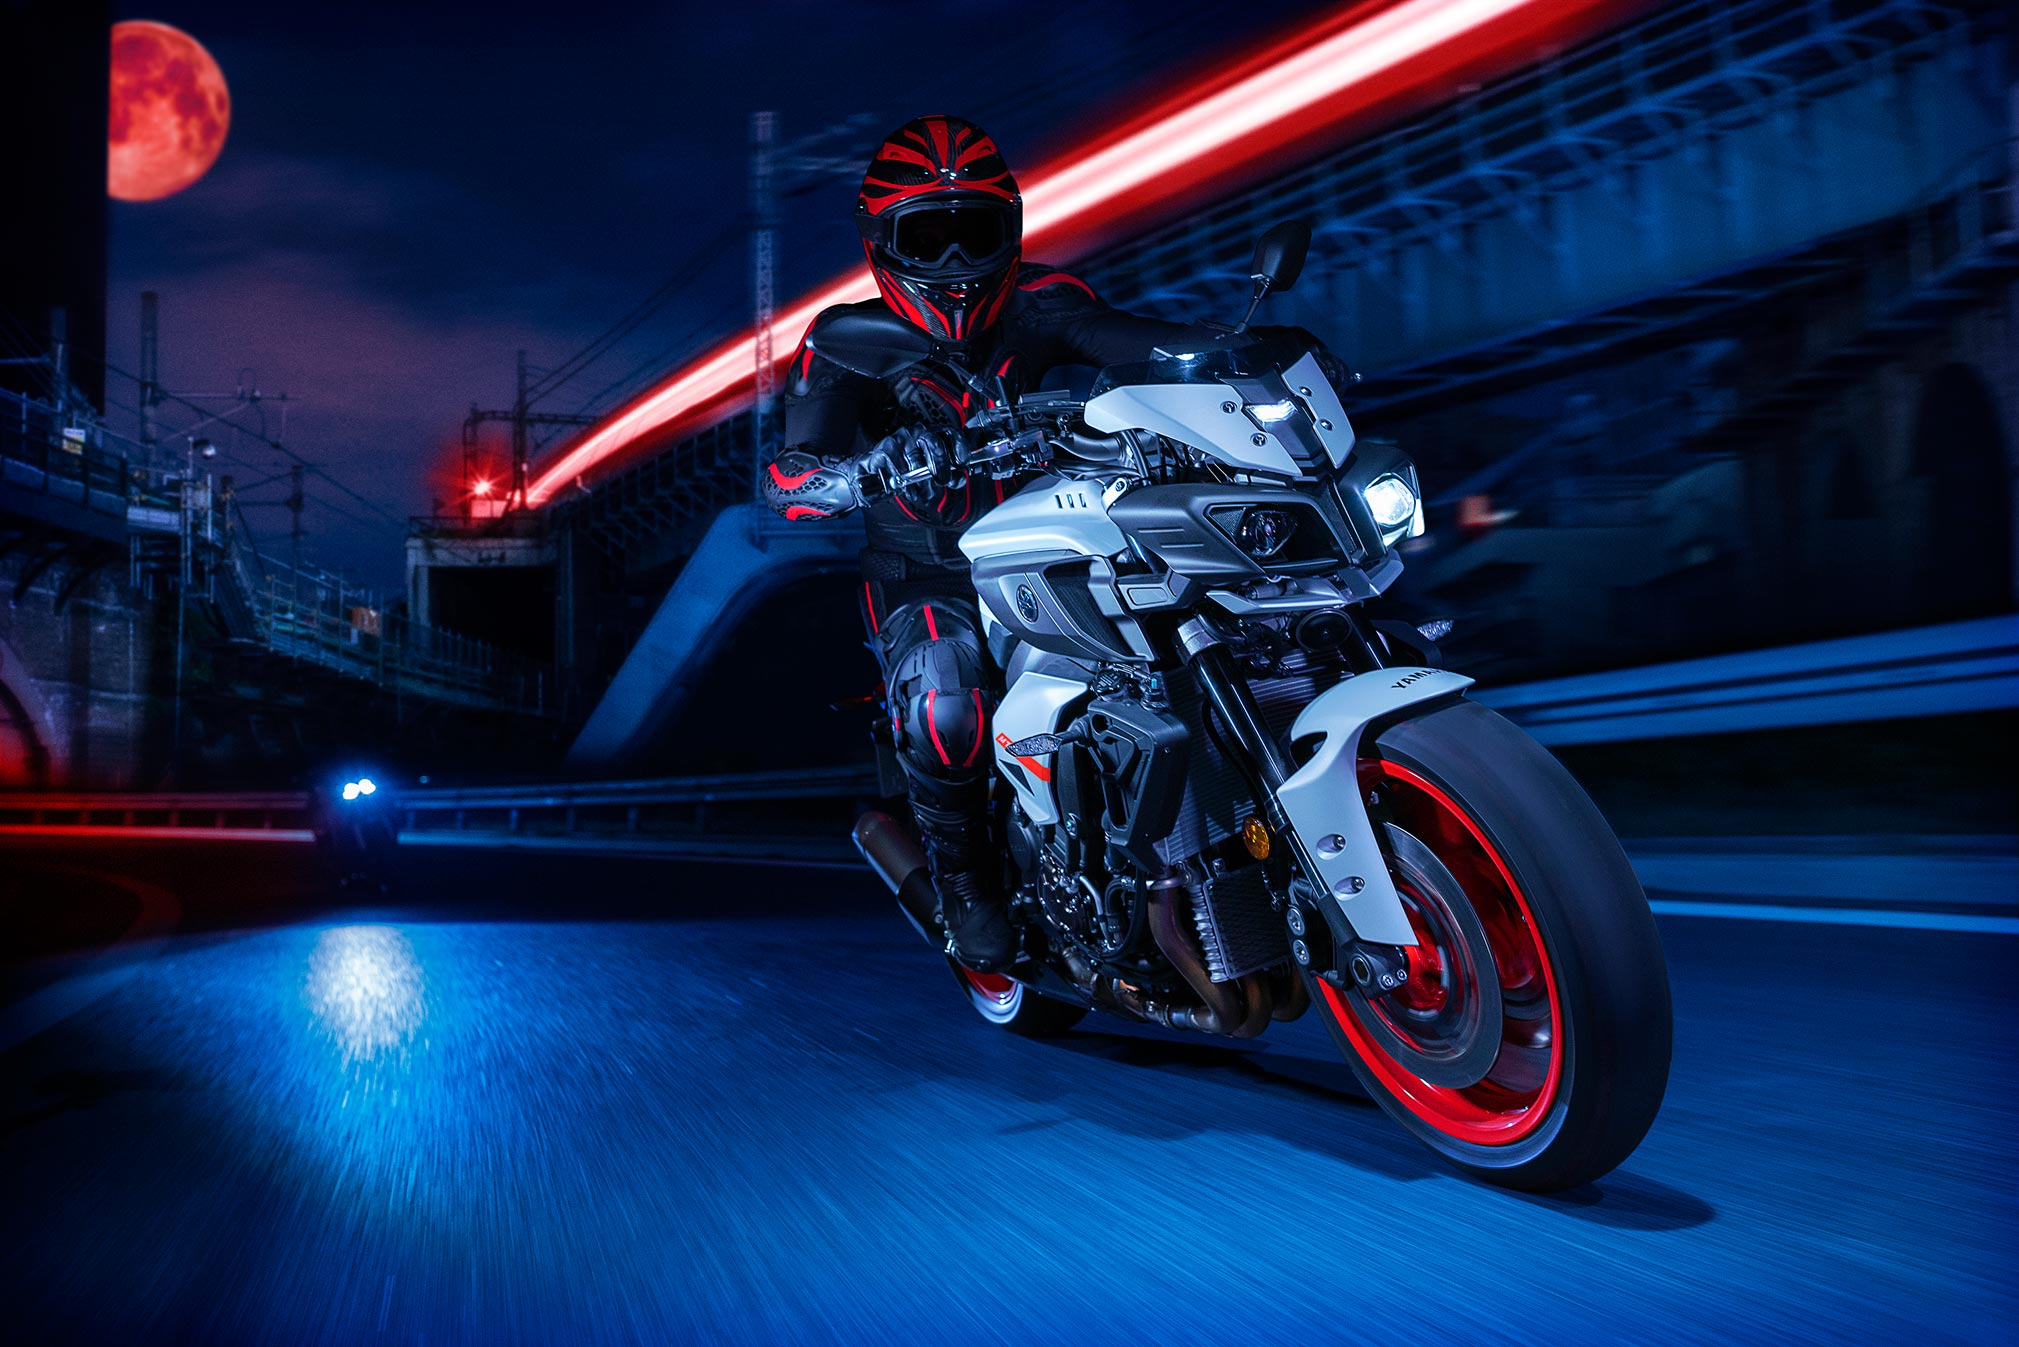 2019 Yamaha MT-10 Guide • Total Motorcycle